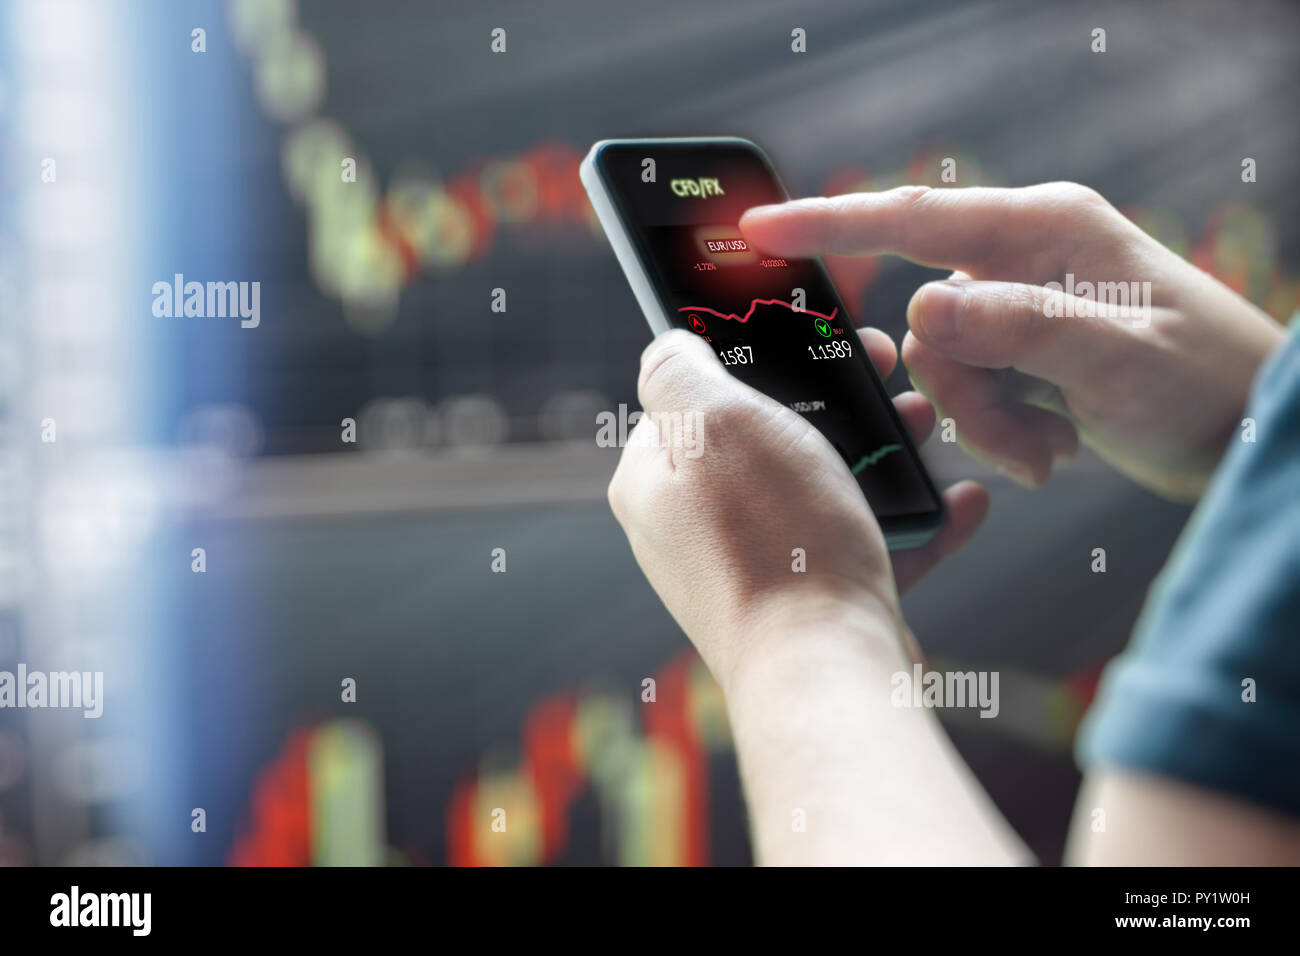 Mans hand holding mobile phone against dark stock market charts - Stock Image